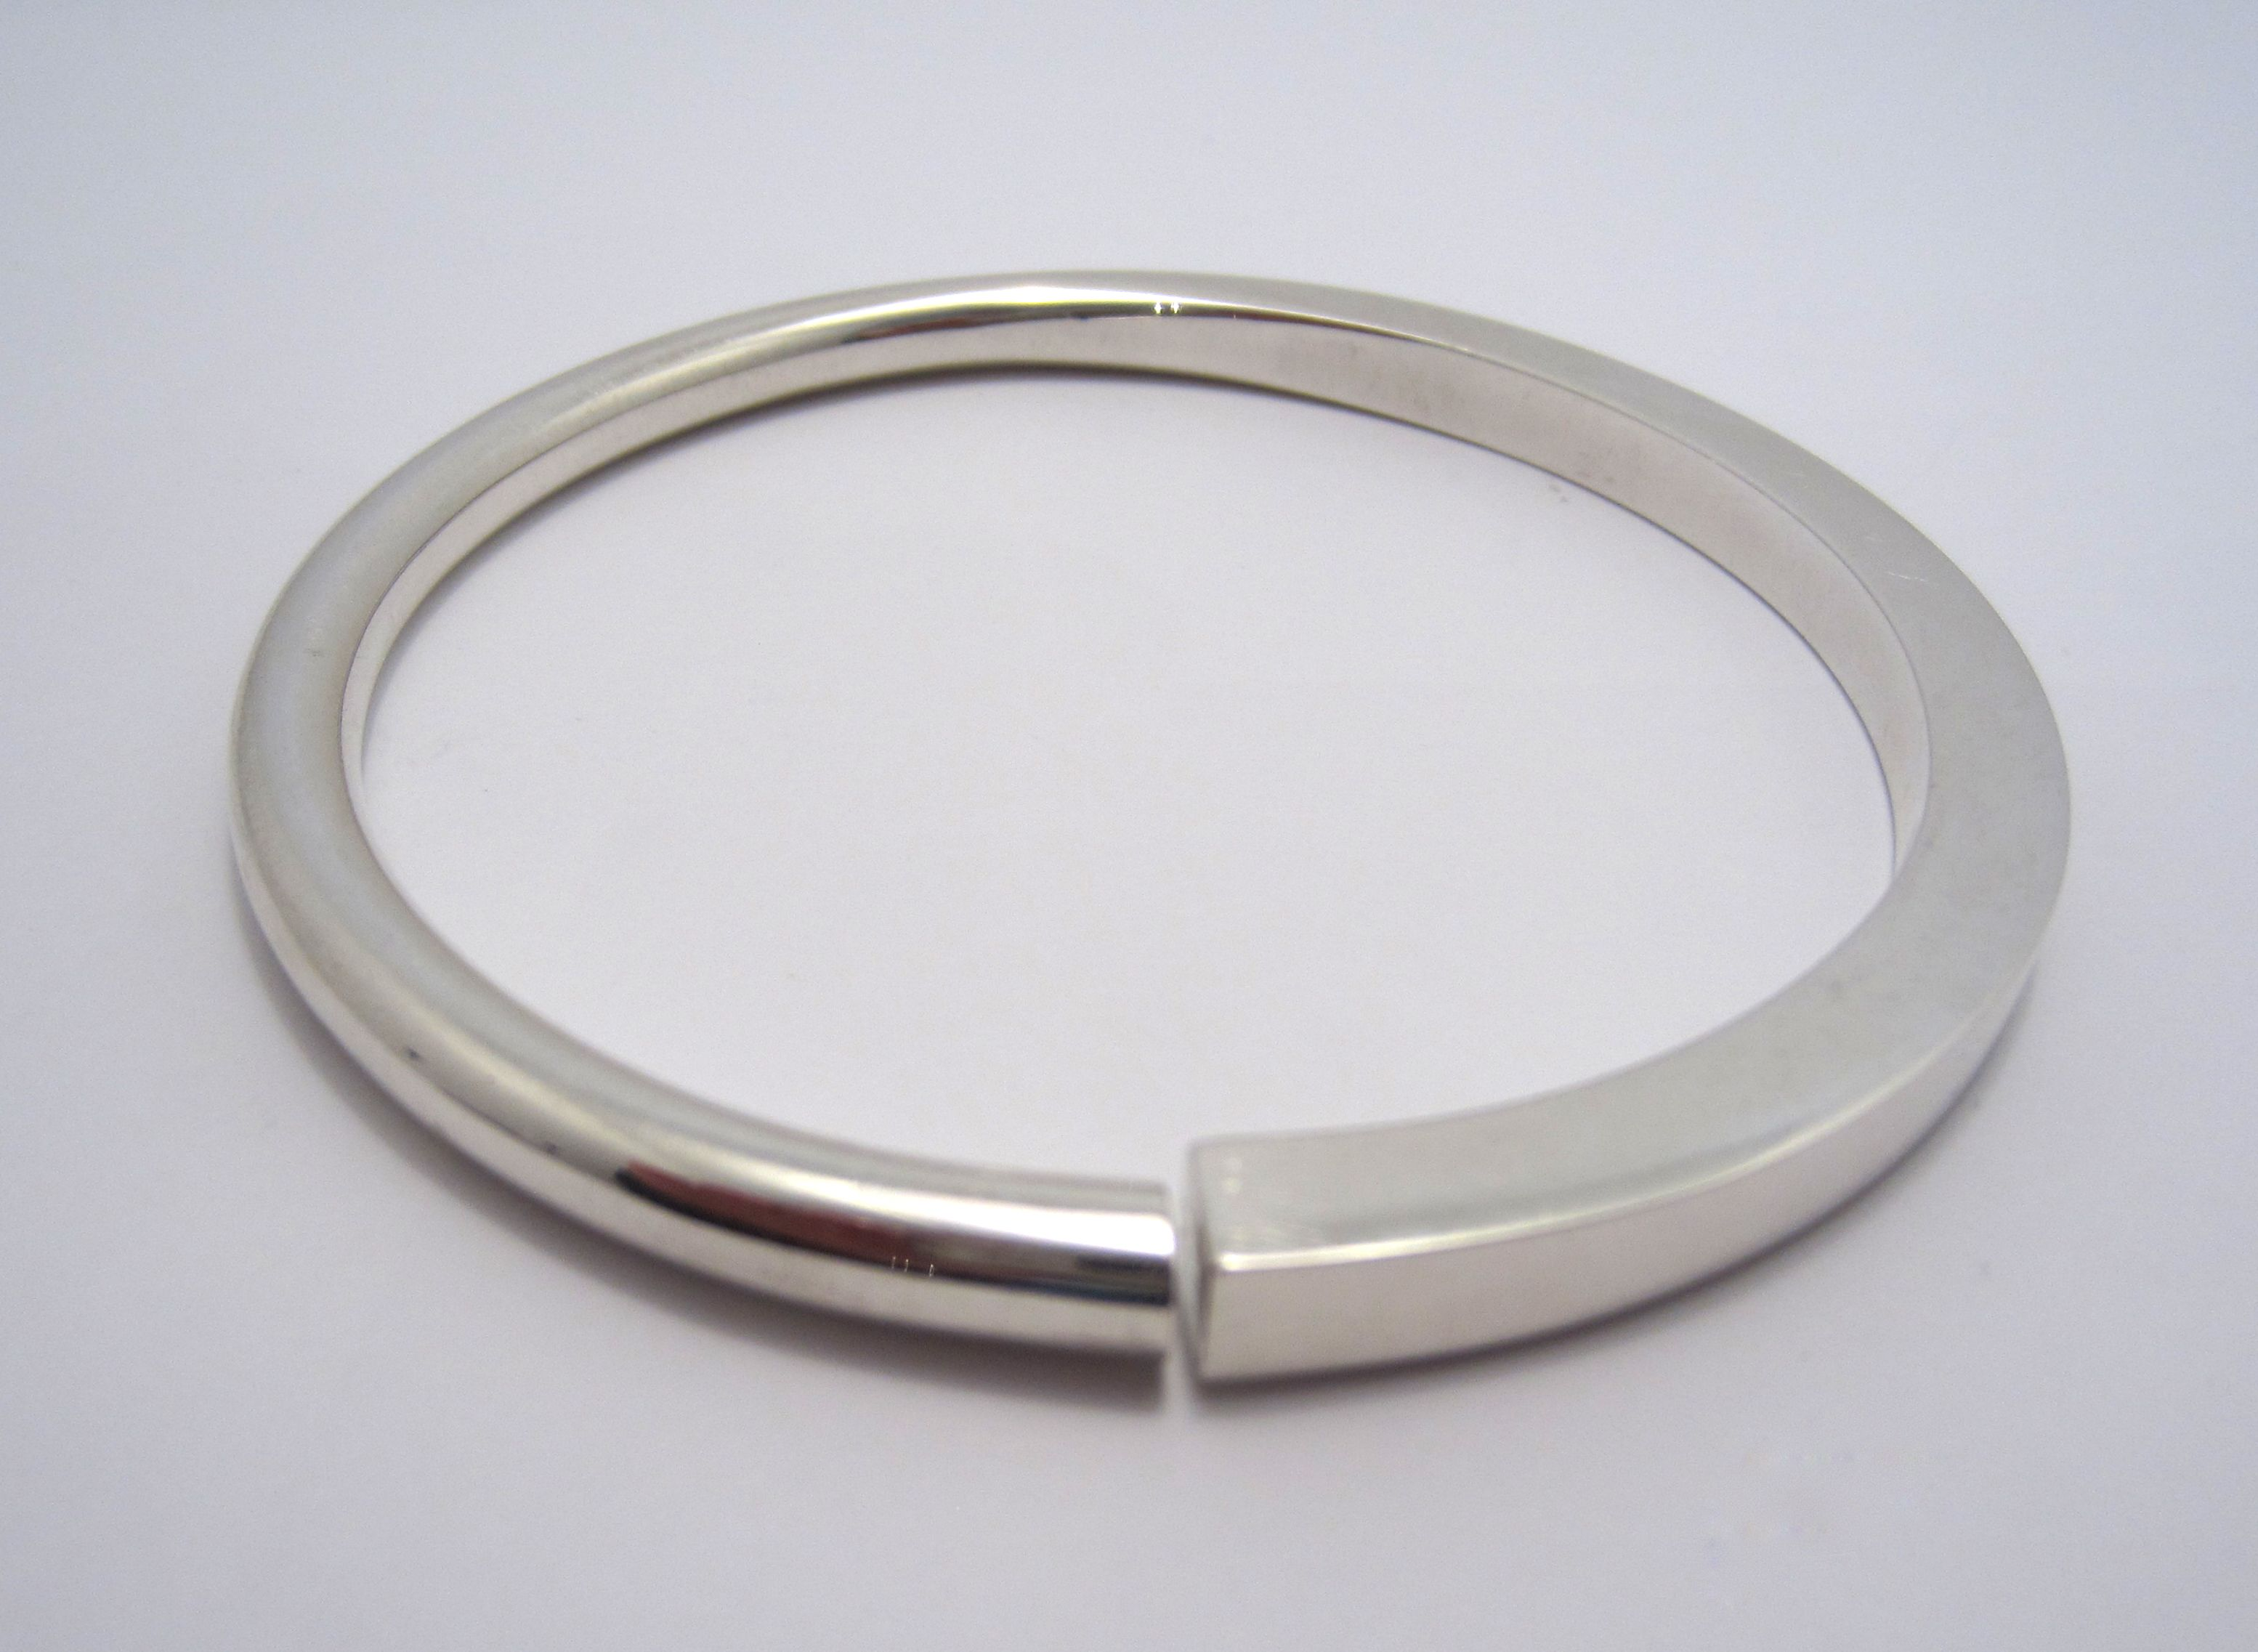 sea bracelets bangle bracelet glass small thumbnail silver bangles product